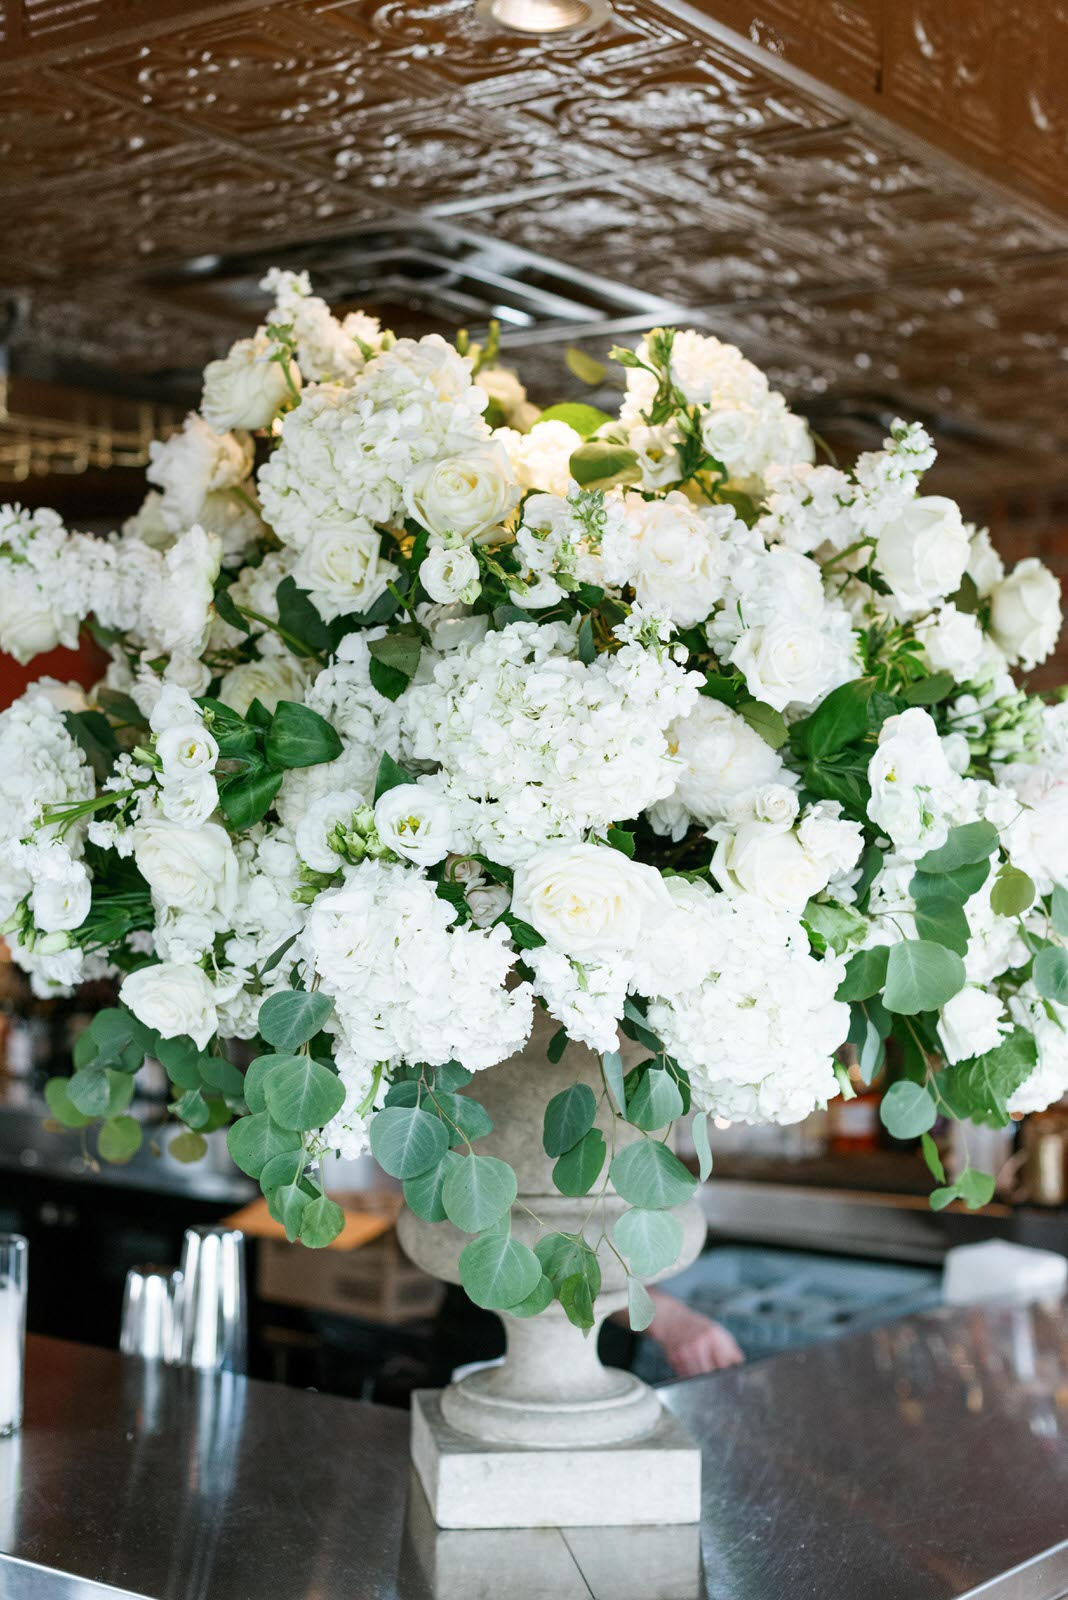 White urn arrangement with lush florals, including hydrangea, roses, eucalyptus. Photography:  Josh & Dana Fernandez , Event Design & Floral:  Maxit Flower Design , Event Planner: Emily Moise,  Keely Thorne Events